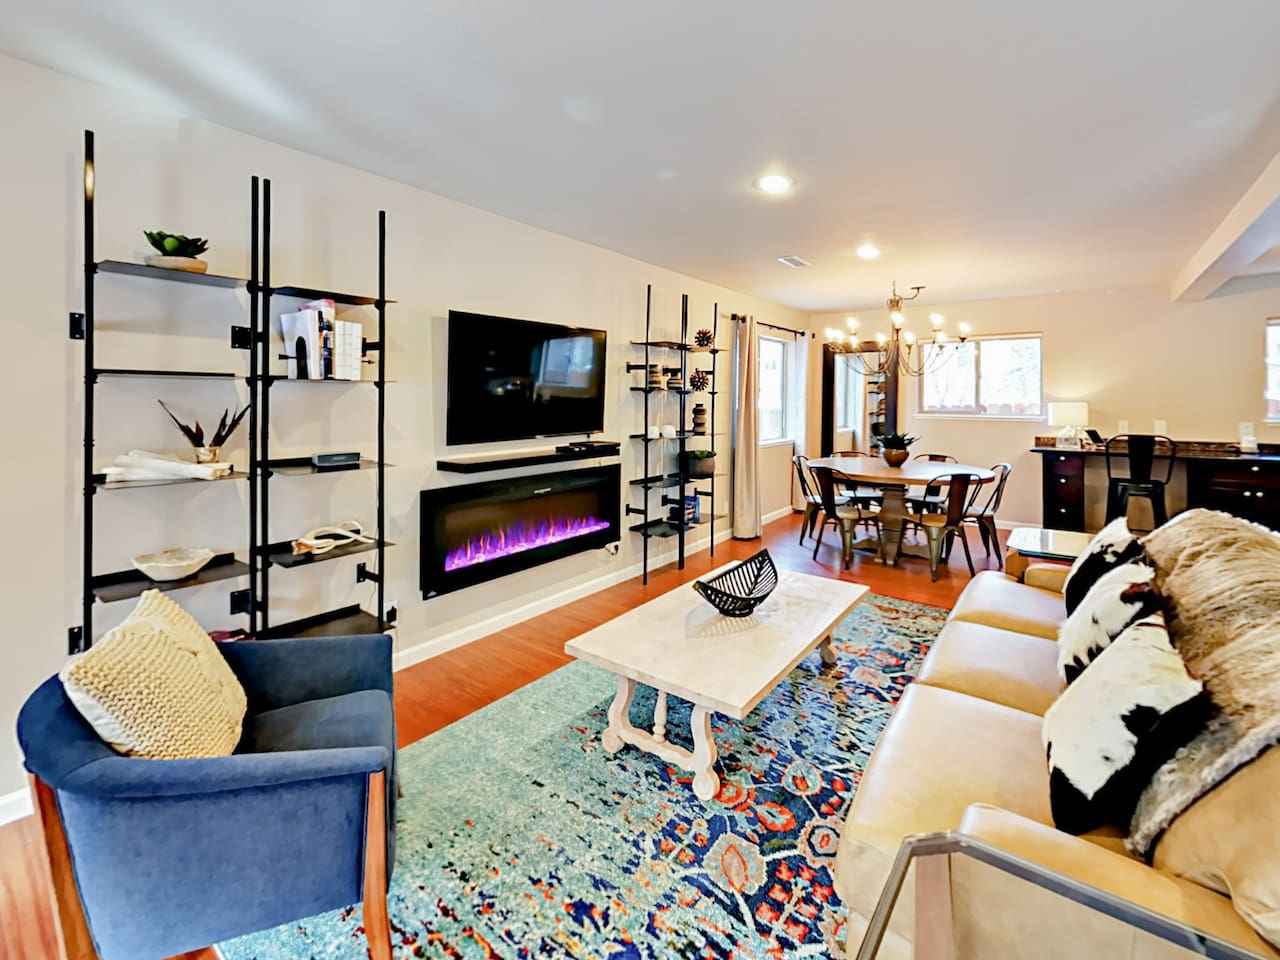 Welcome to South Lake Tahoe! This inviting home is professionally managed by TurnKey Vacation Rentals.